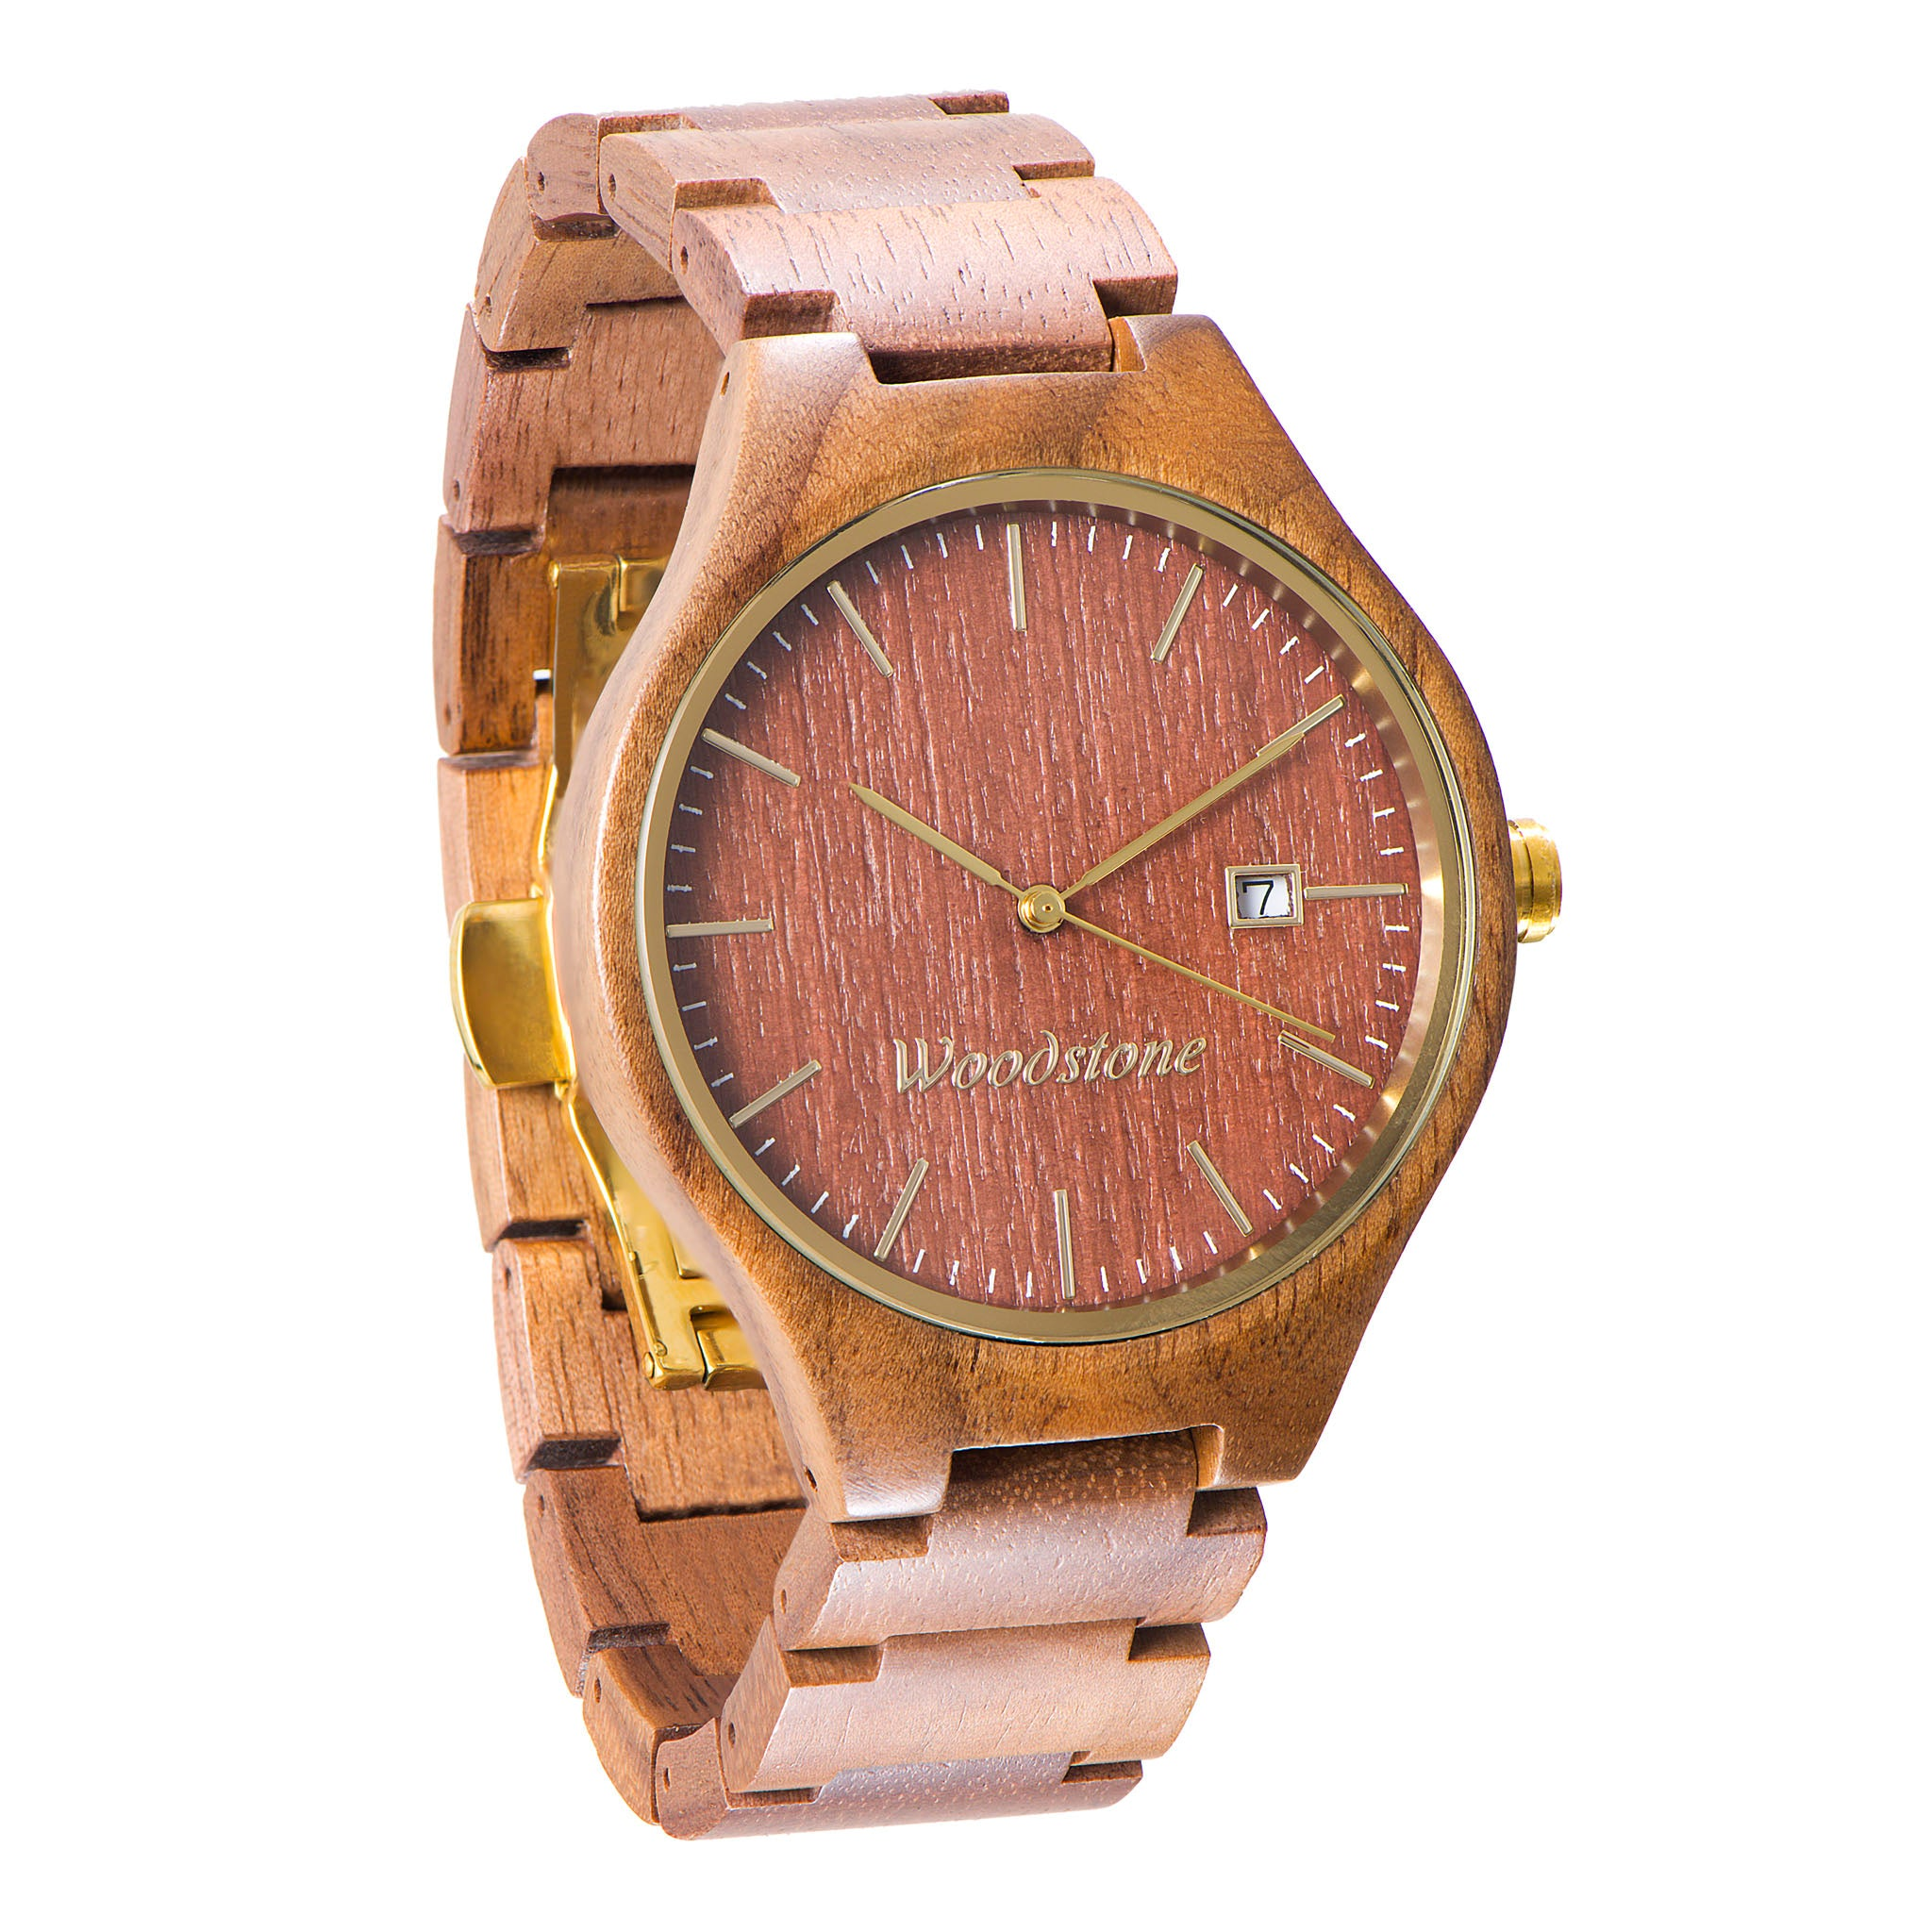 quartz new gift superior watch s grain wristwatch wood fashion men for watches june women modern